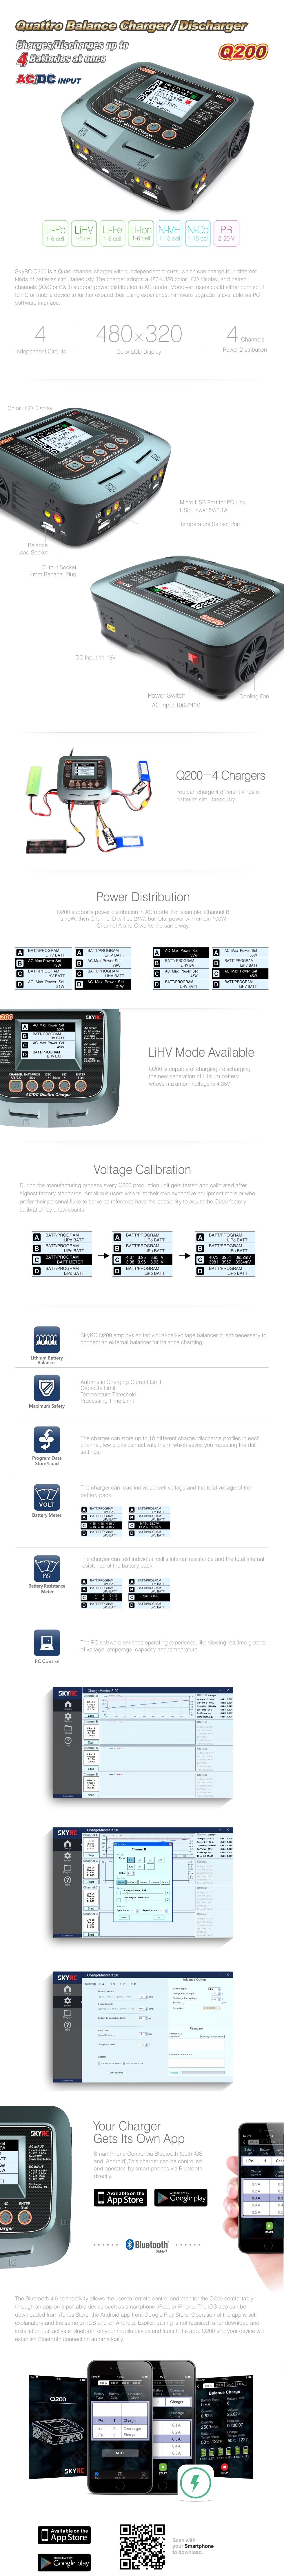 Q200 Charger Information